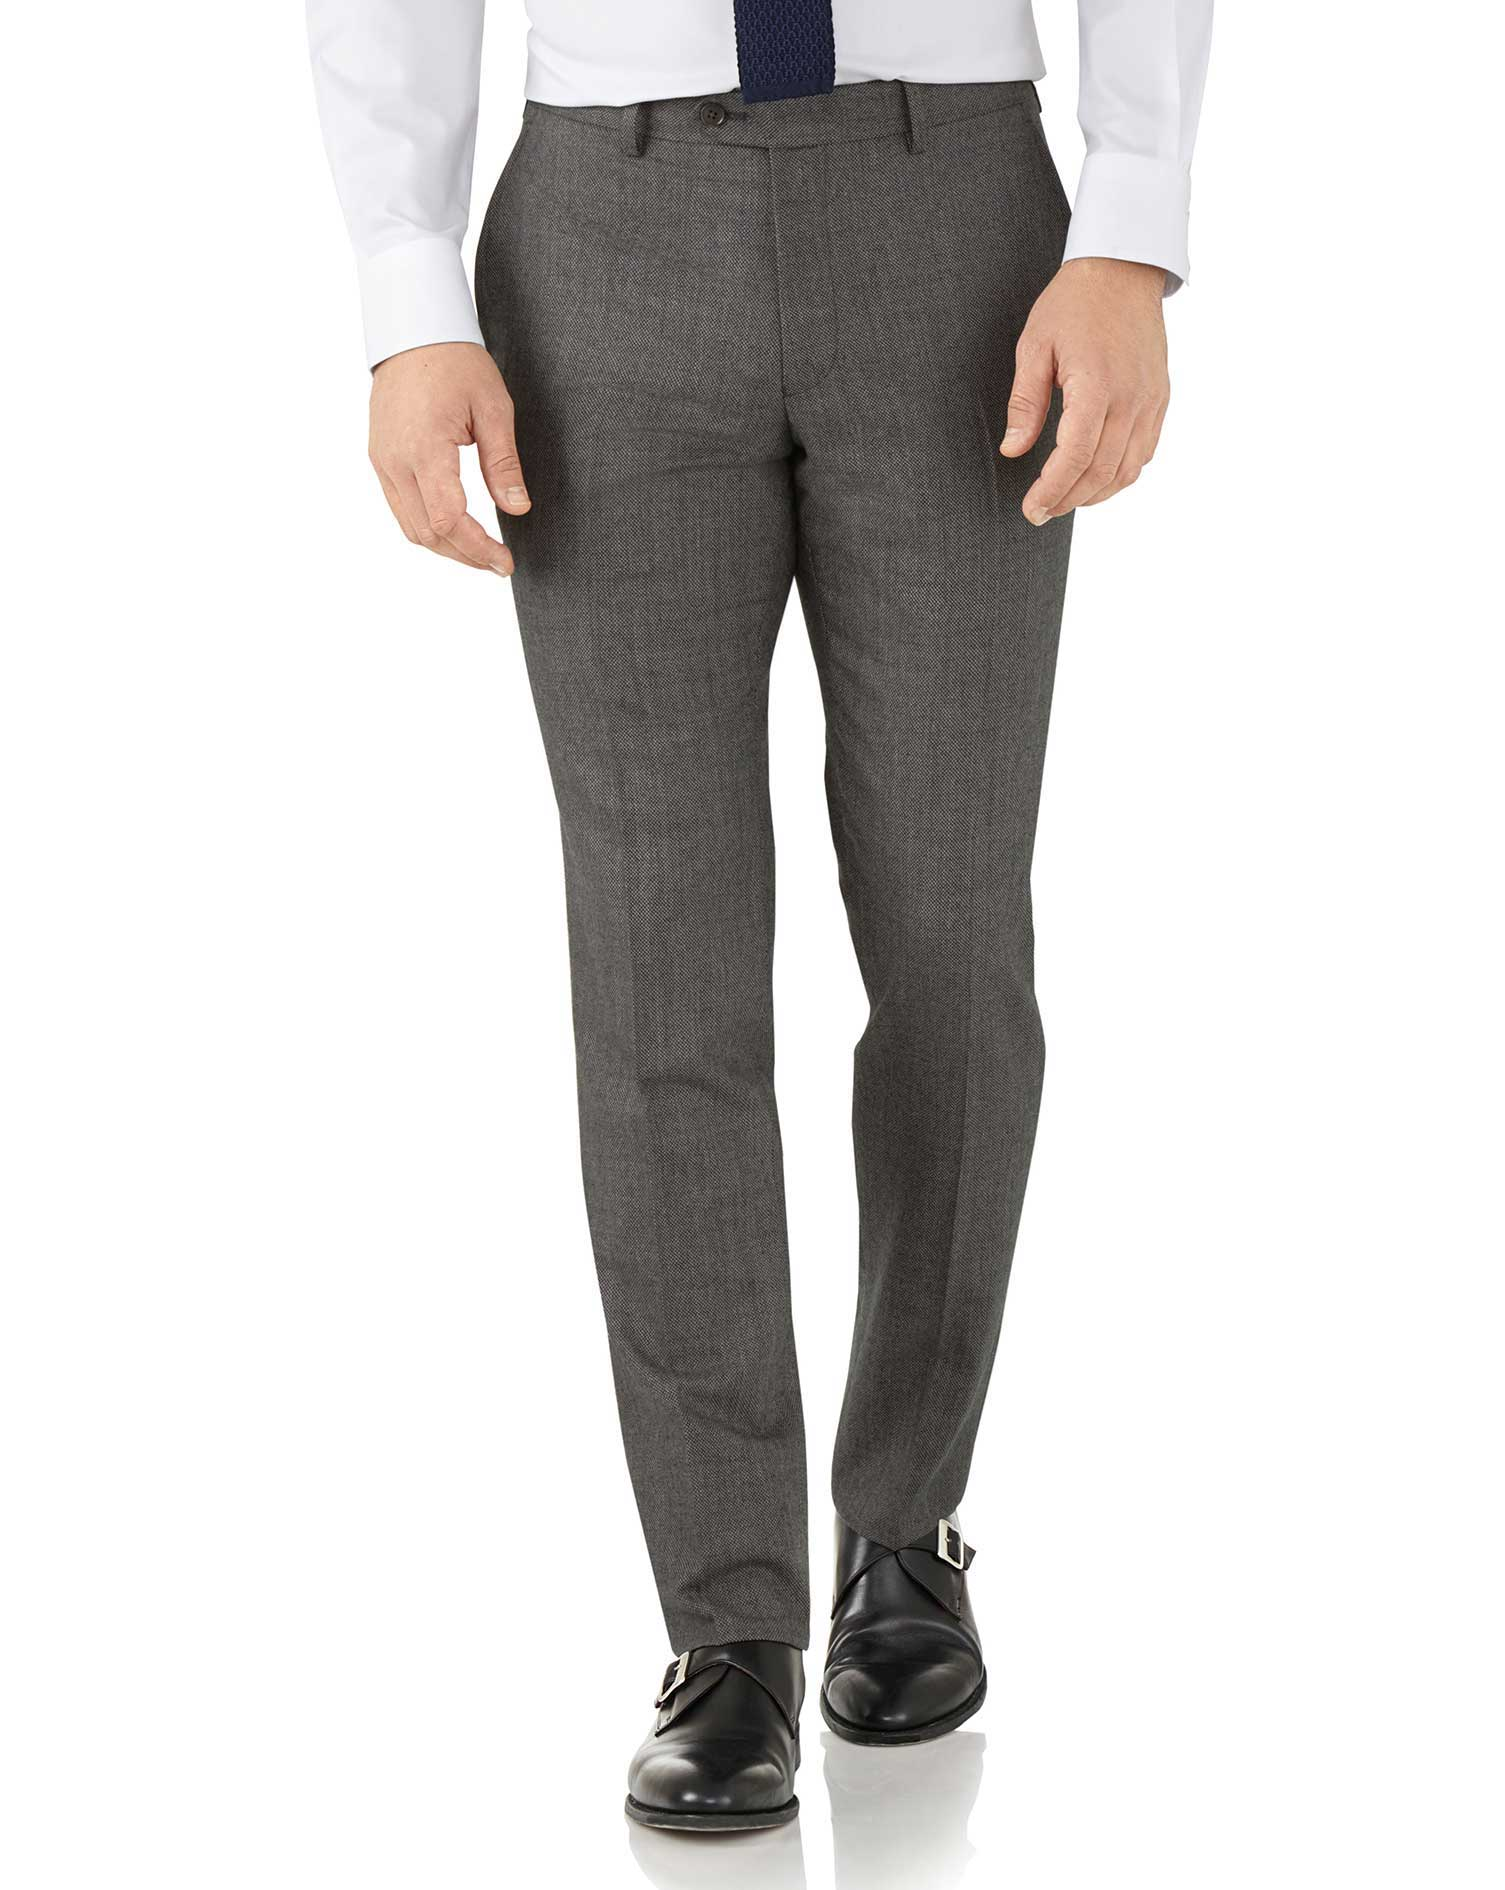 Silver Slim Fit Flannel Business Suit Trousers Size W40 L32 by Charles Tyrwhitt